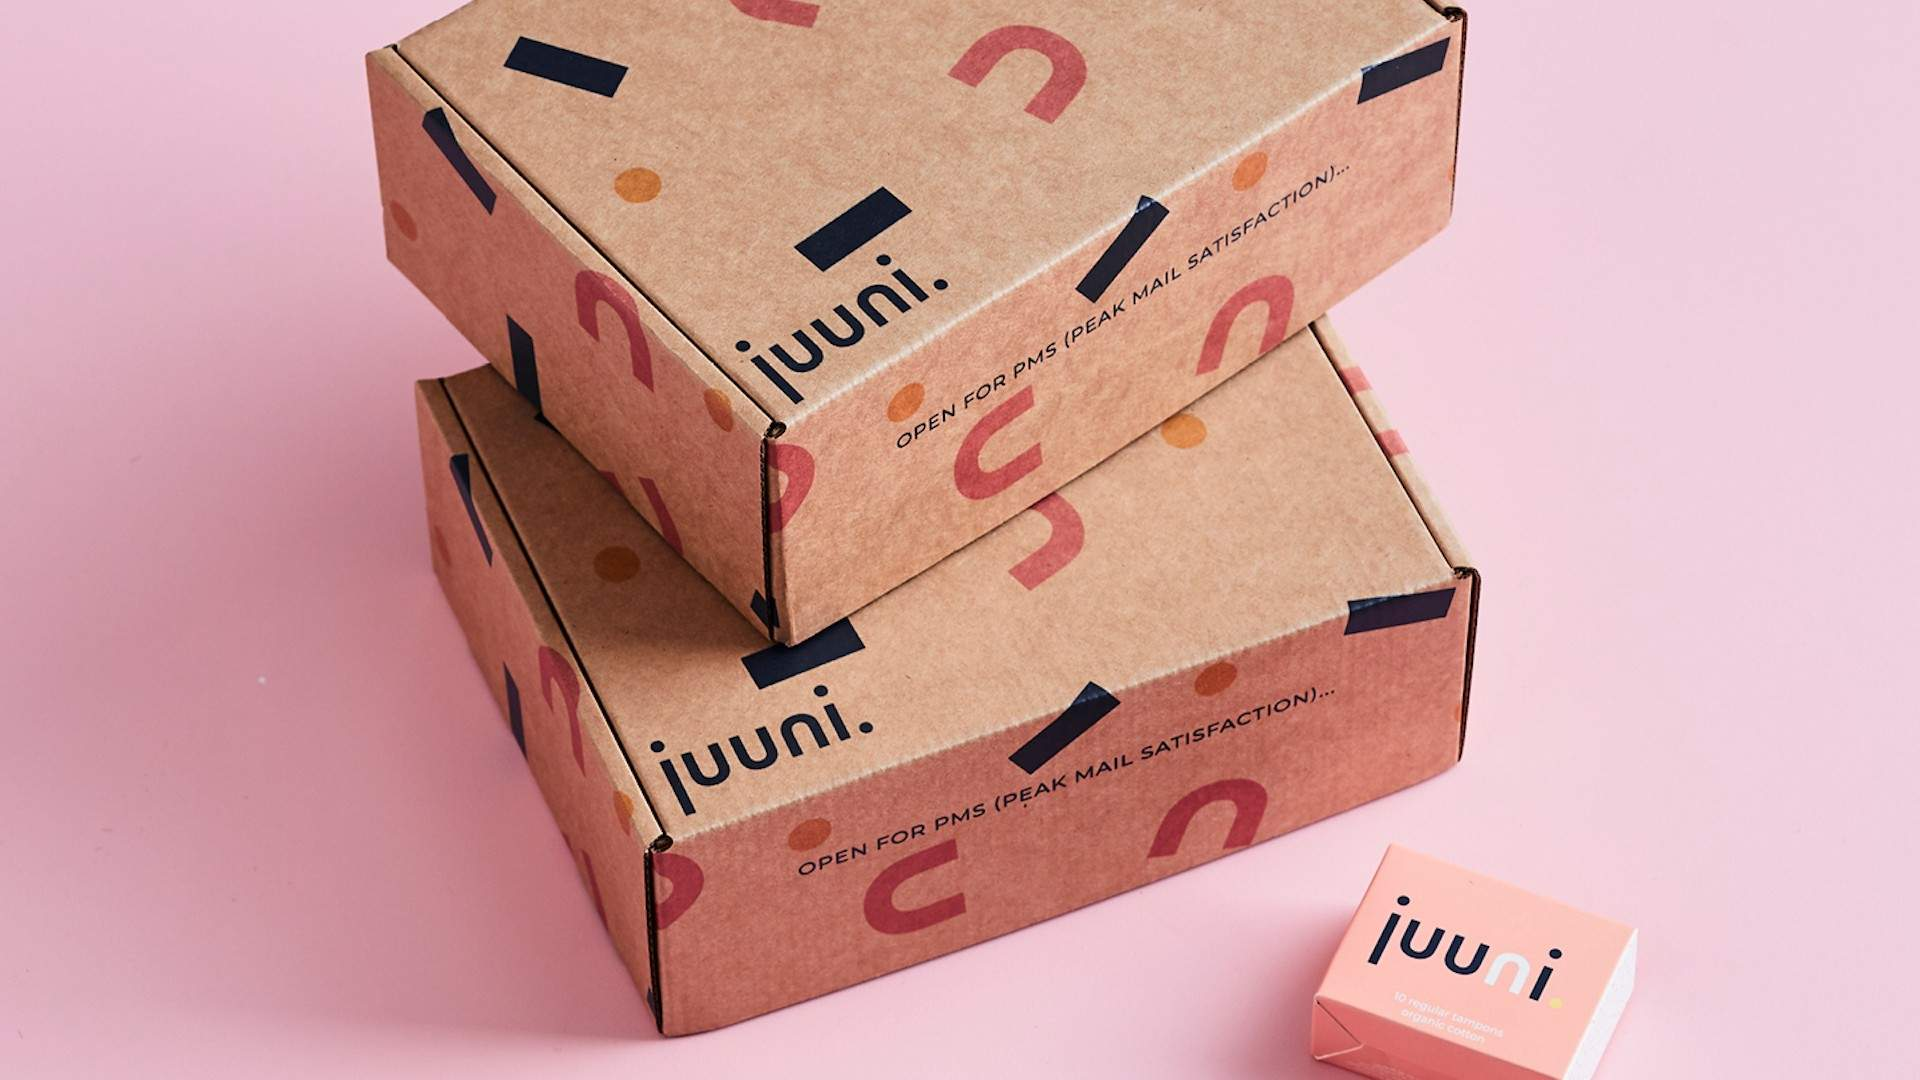 Organic Pad and Tampon Subscription Service Juuni Is Giving Away Free Period and Skincare Products